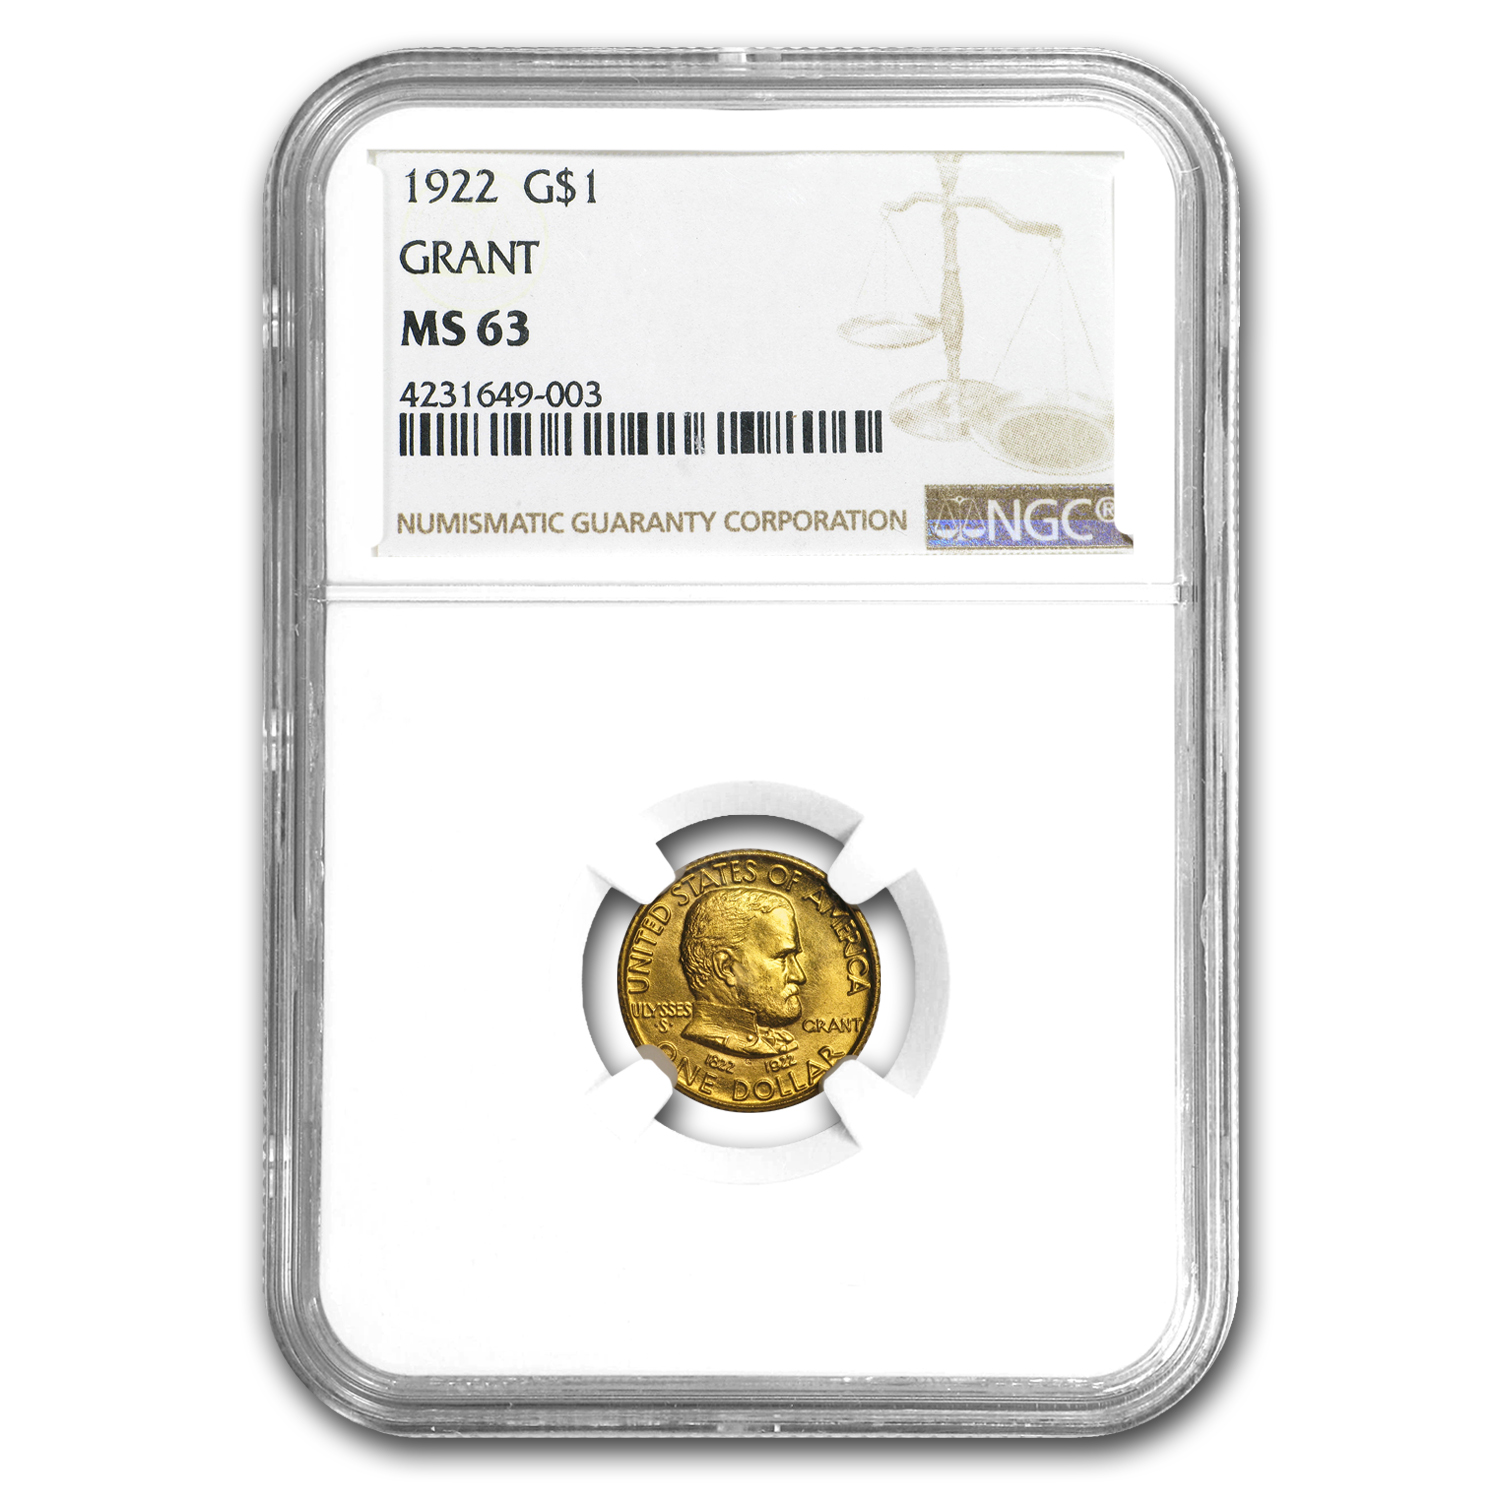 1922 Gold $1.00 Grant No Star MS-63 NGC